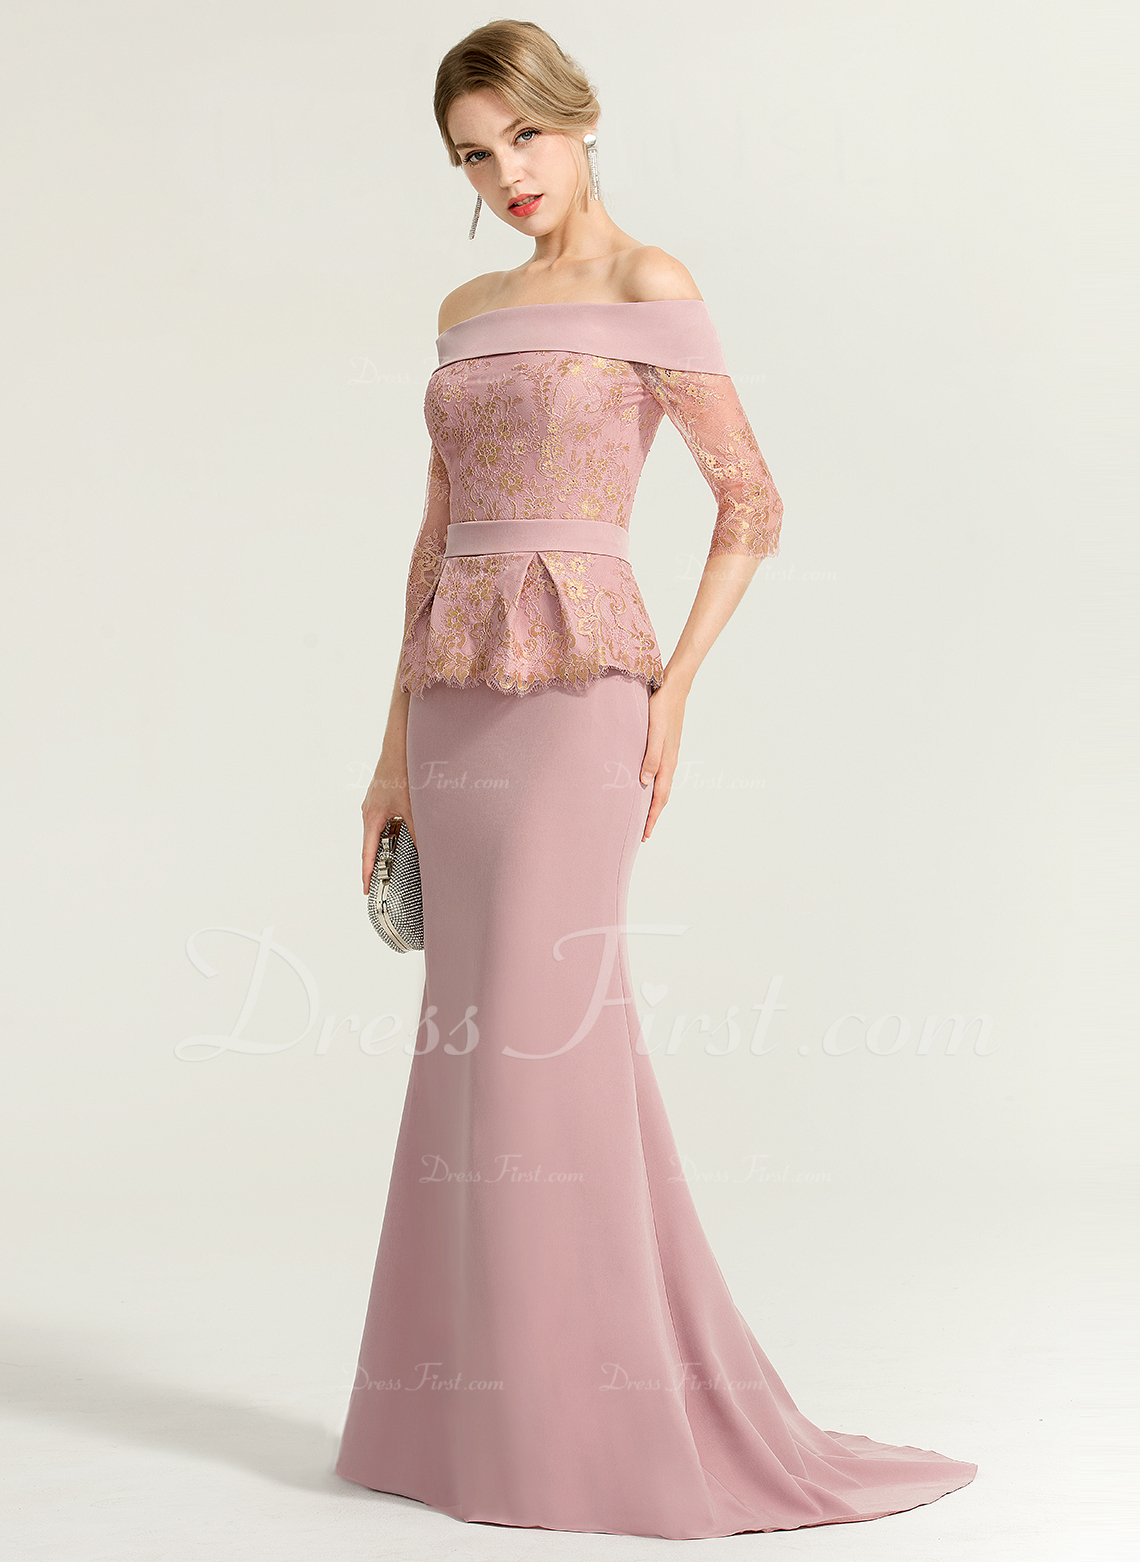 5e9c63602e5a Evening Dresses; #167691. Loading zoom. Loading. Color: Dusty Rose. Trumpet/Mermaid  Off-the-Shoulder Sweep Train ...